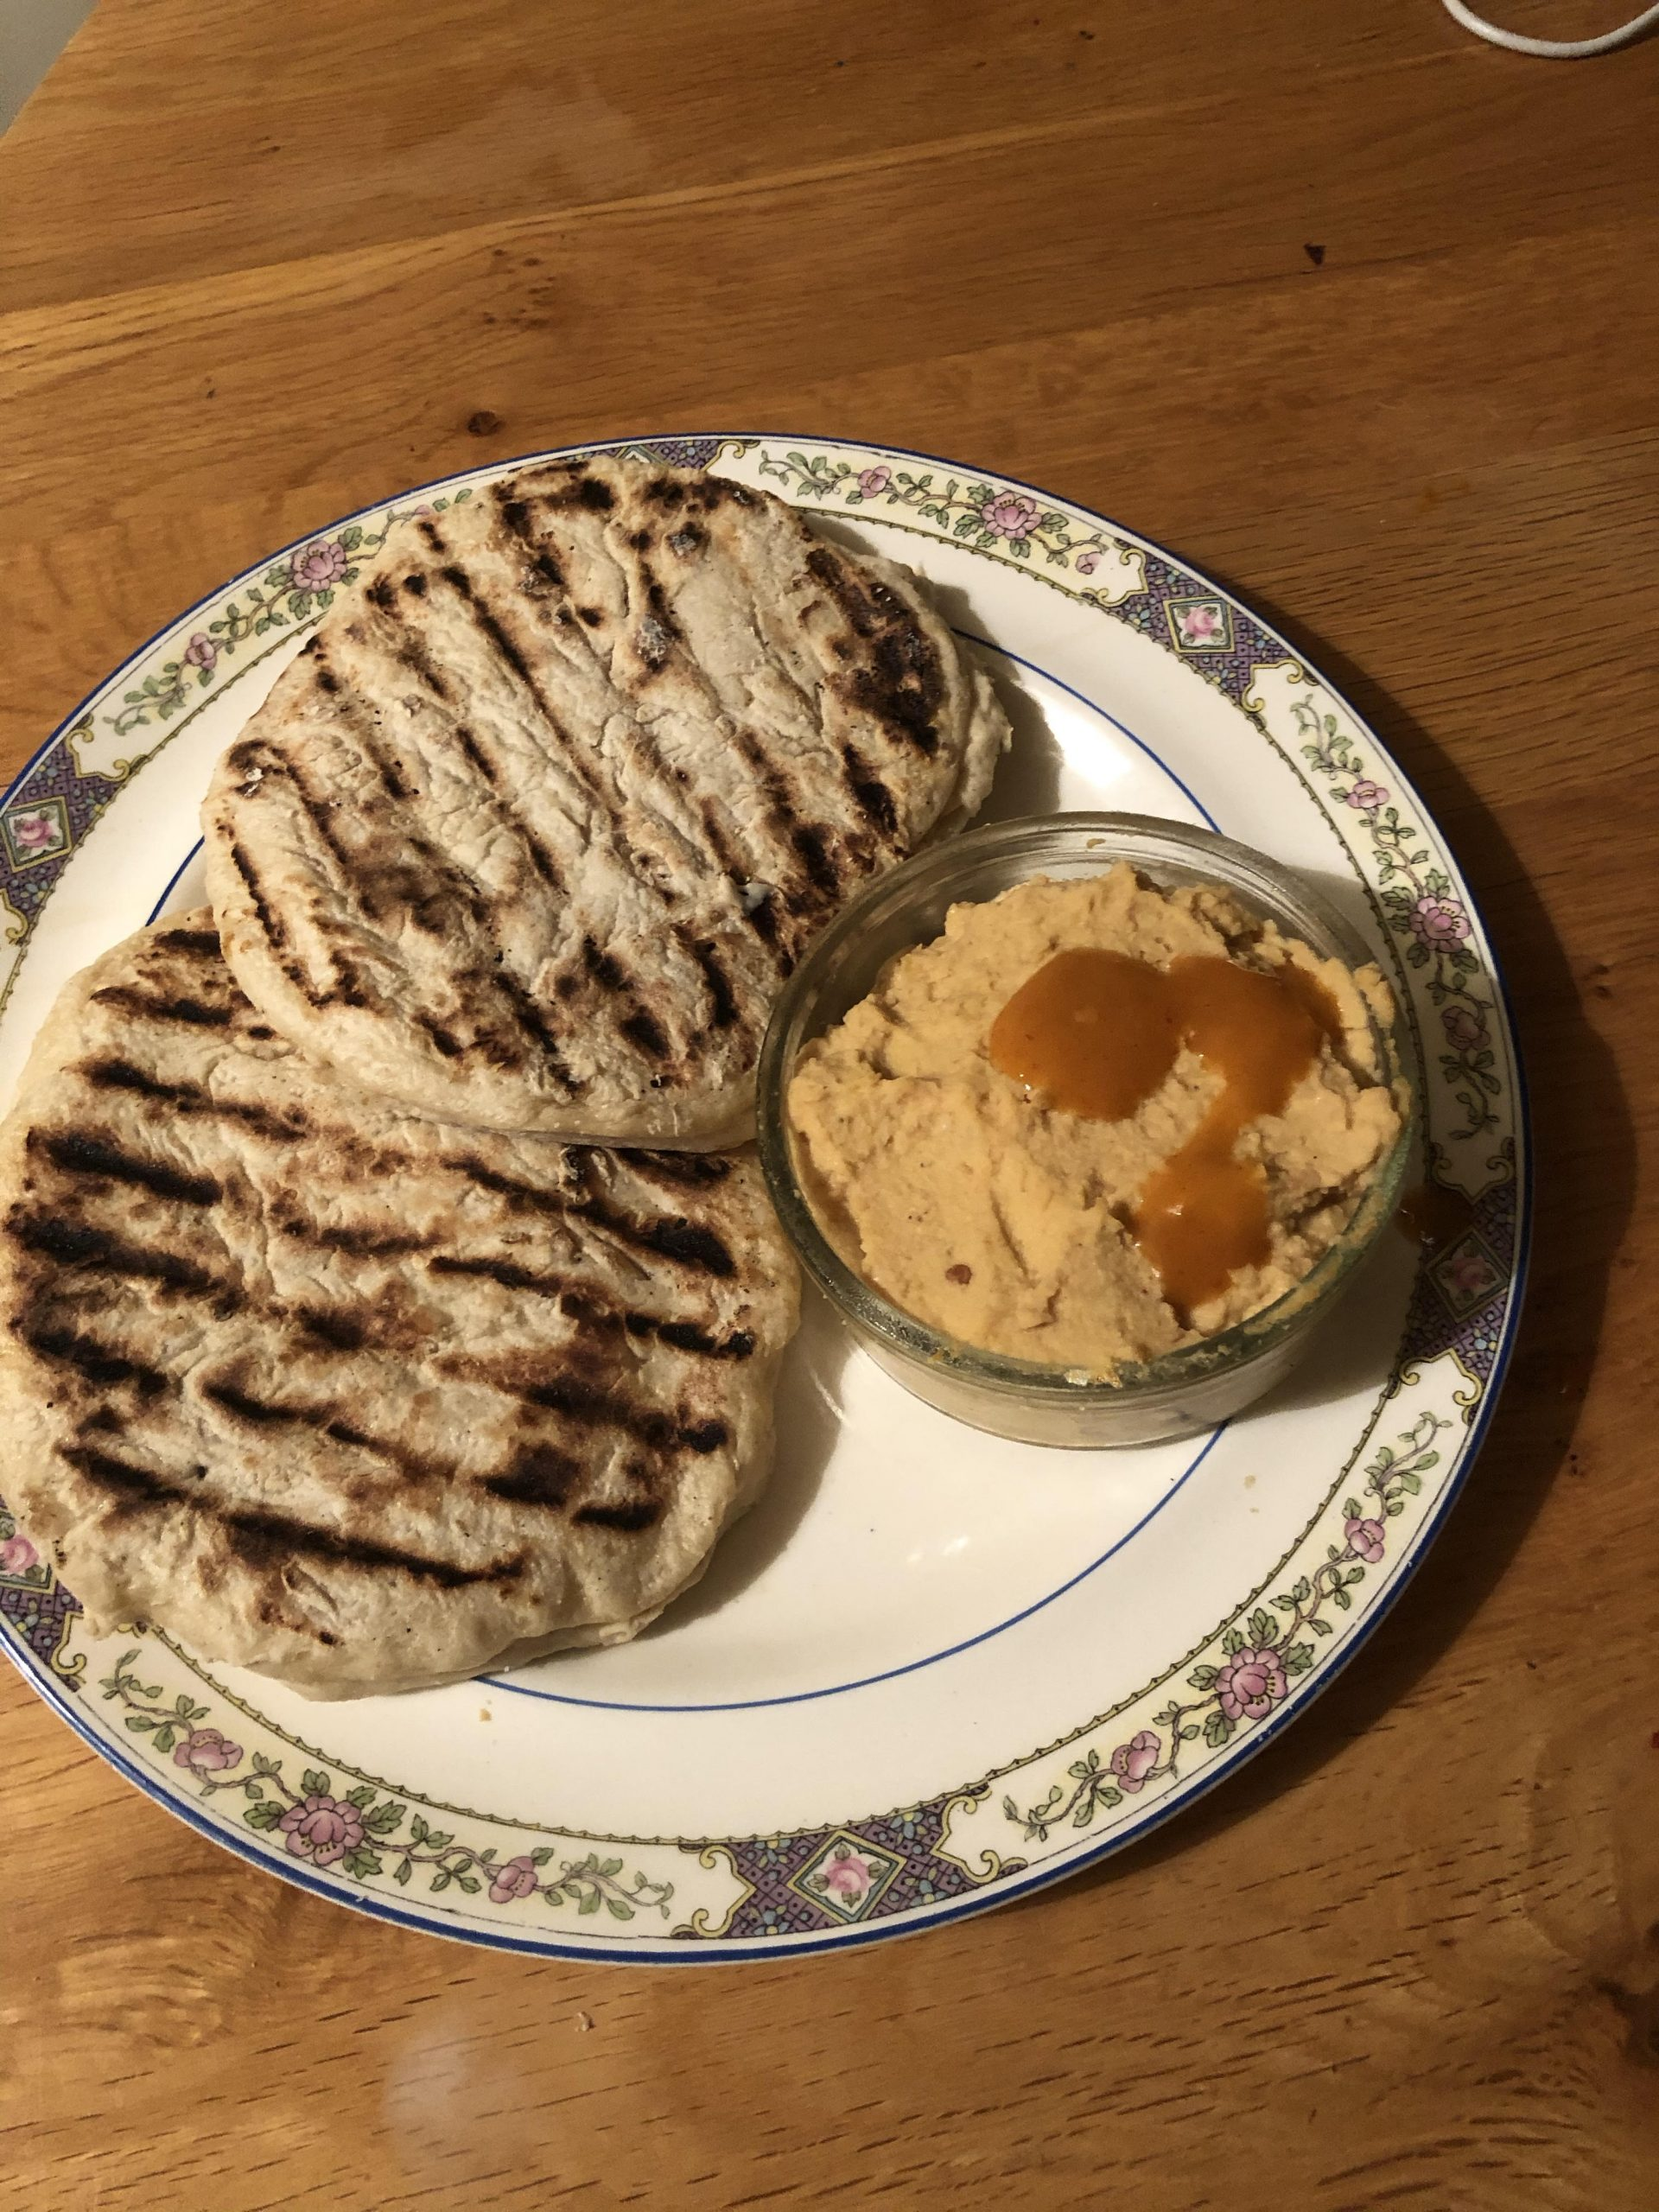 Image shows two round flatbreads with charred griddle lines going through each, next to a bowl of beige hummus with orange piri piri sauce on top, all served on a white plate with decorative border on top of a brown wooden table.